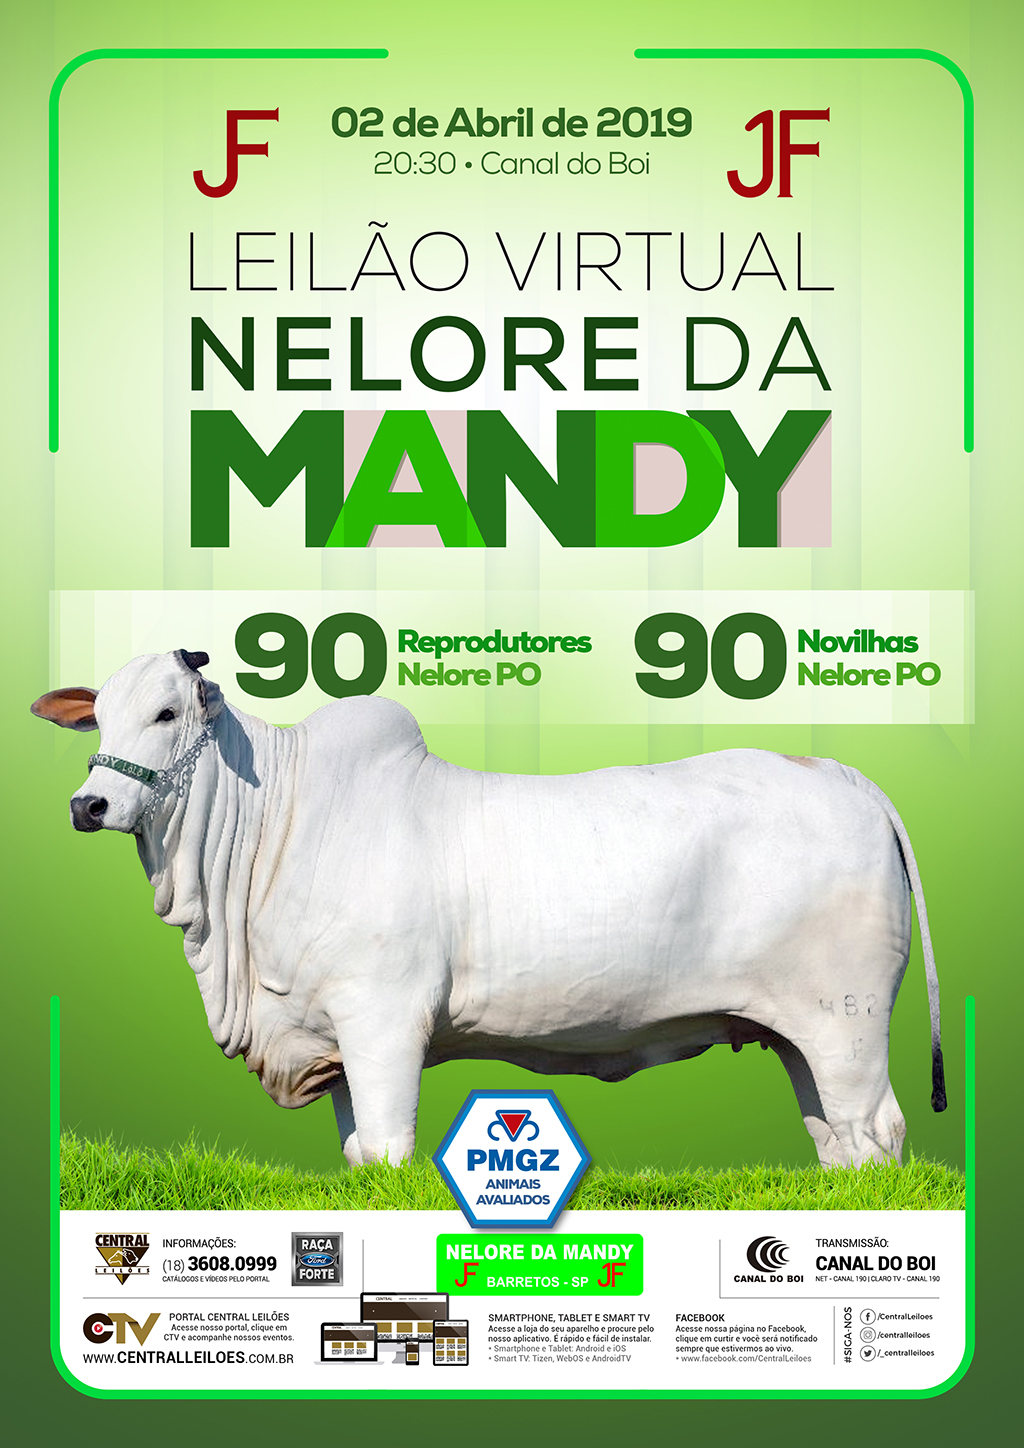 LEILÃO VIRTUAL NELORE DA MANDY